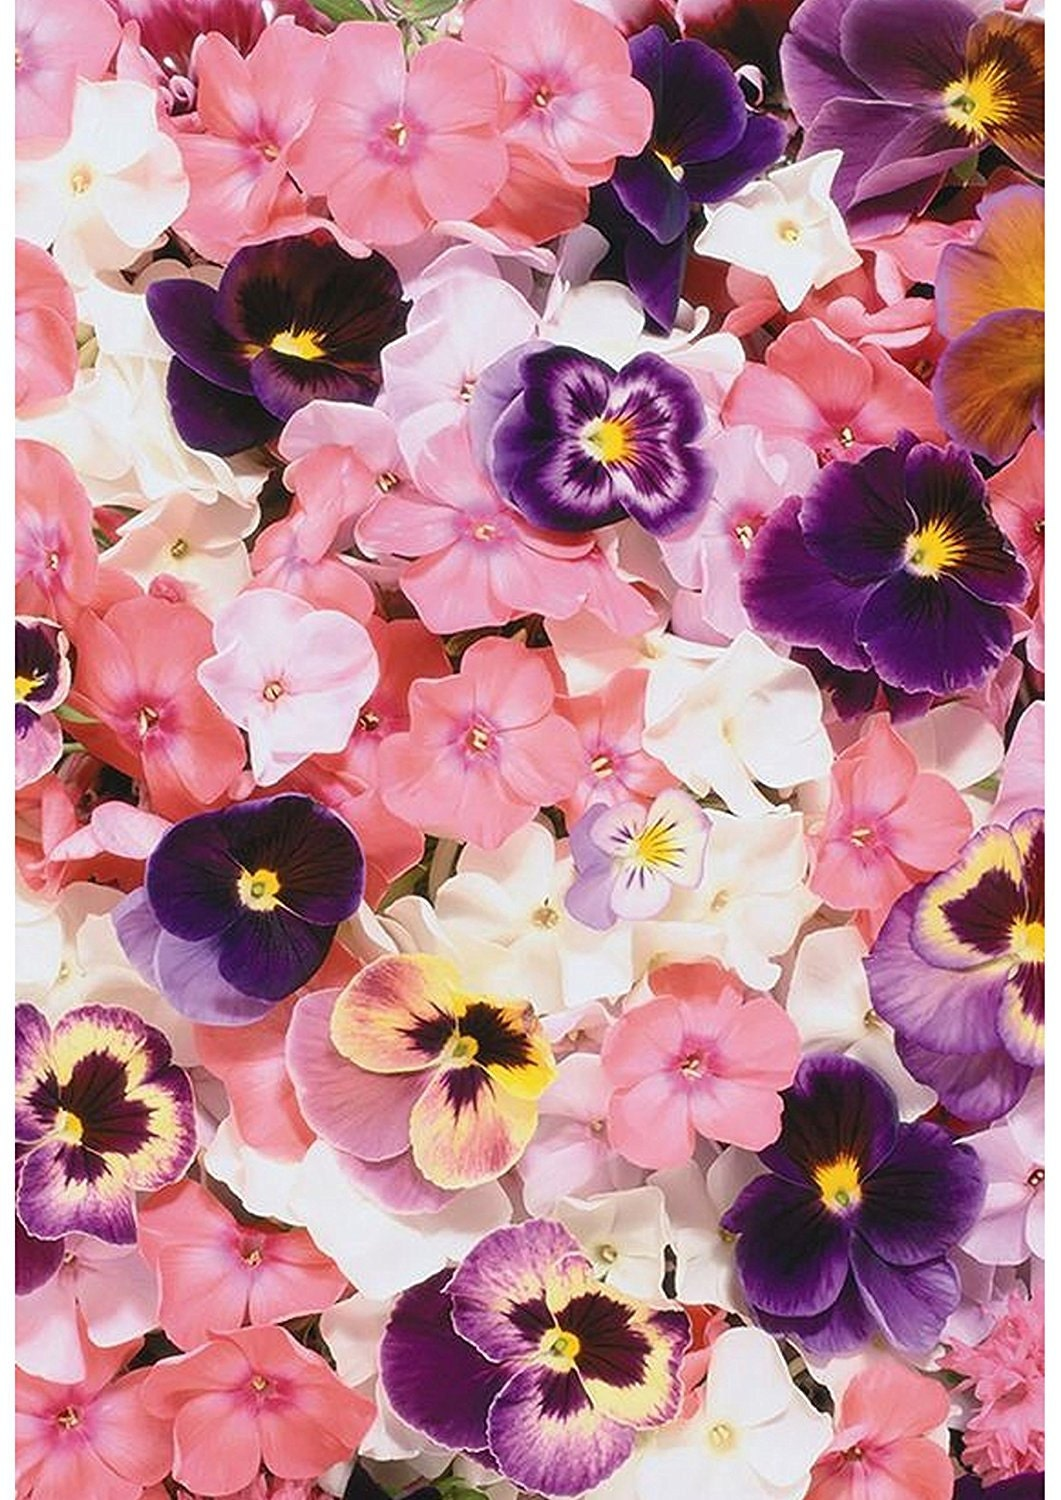 1 X A4 Printed Pink Pansy Flower Floral Wallpaper Decor Icing Etsy